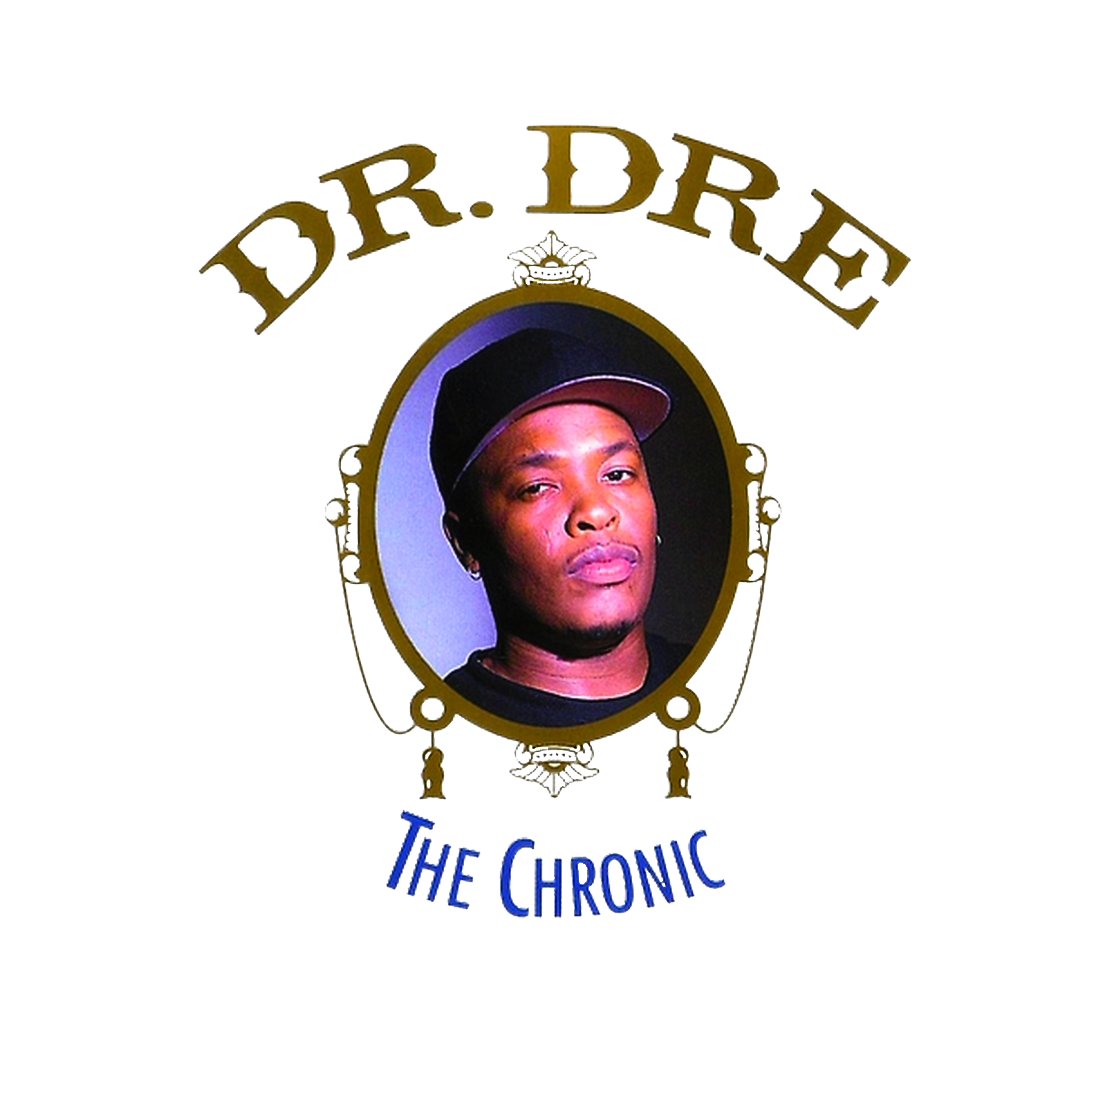 Dr. Dre - The Chronic [Transparent]